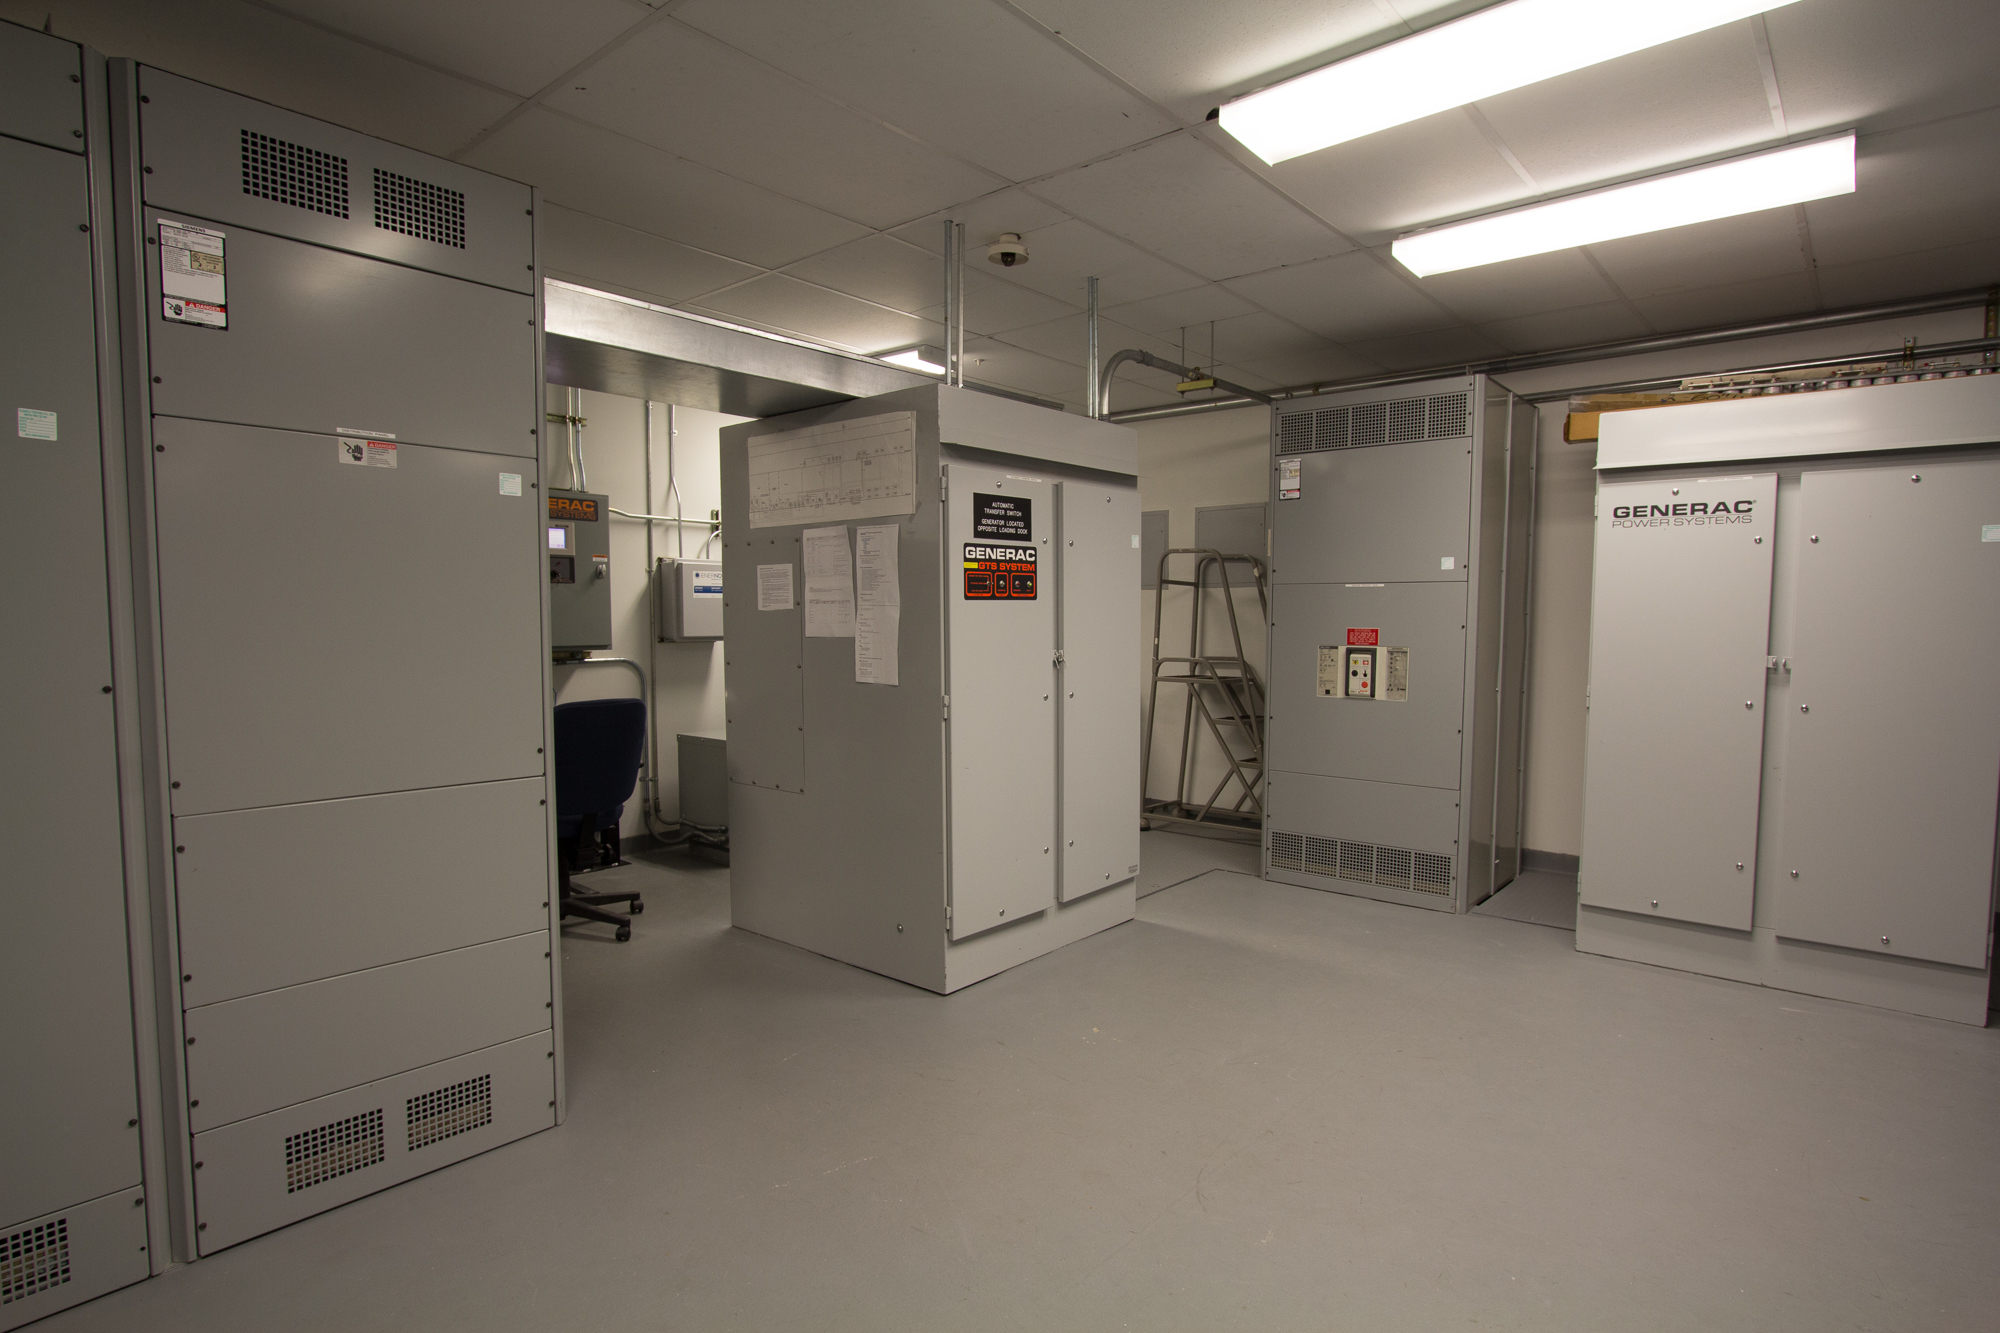 Powered via a 2MW utility feed directly connected to an Automatic Transfer Switch (ATS), which powers the rest of the facility.